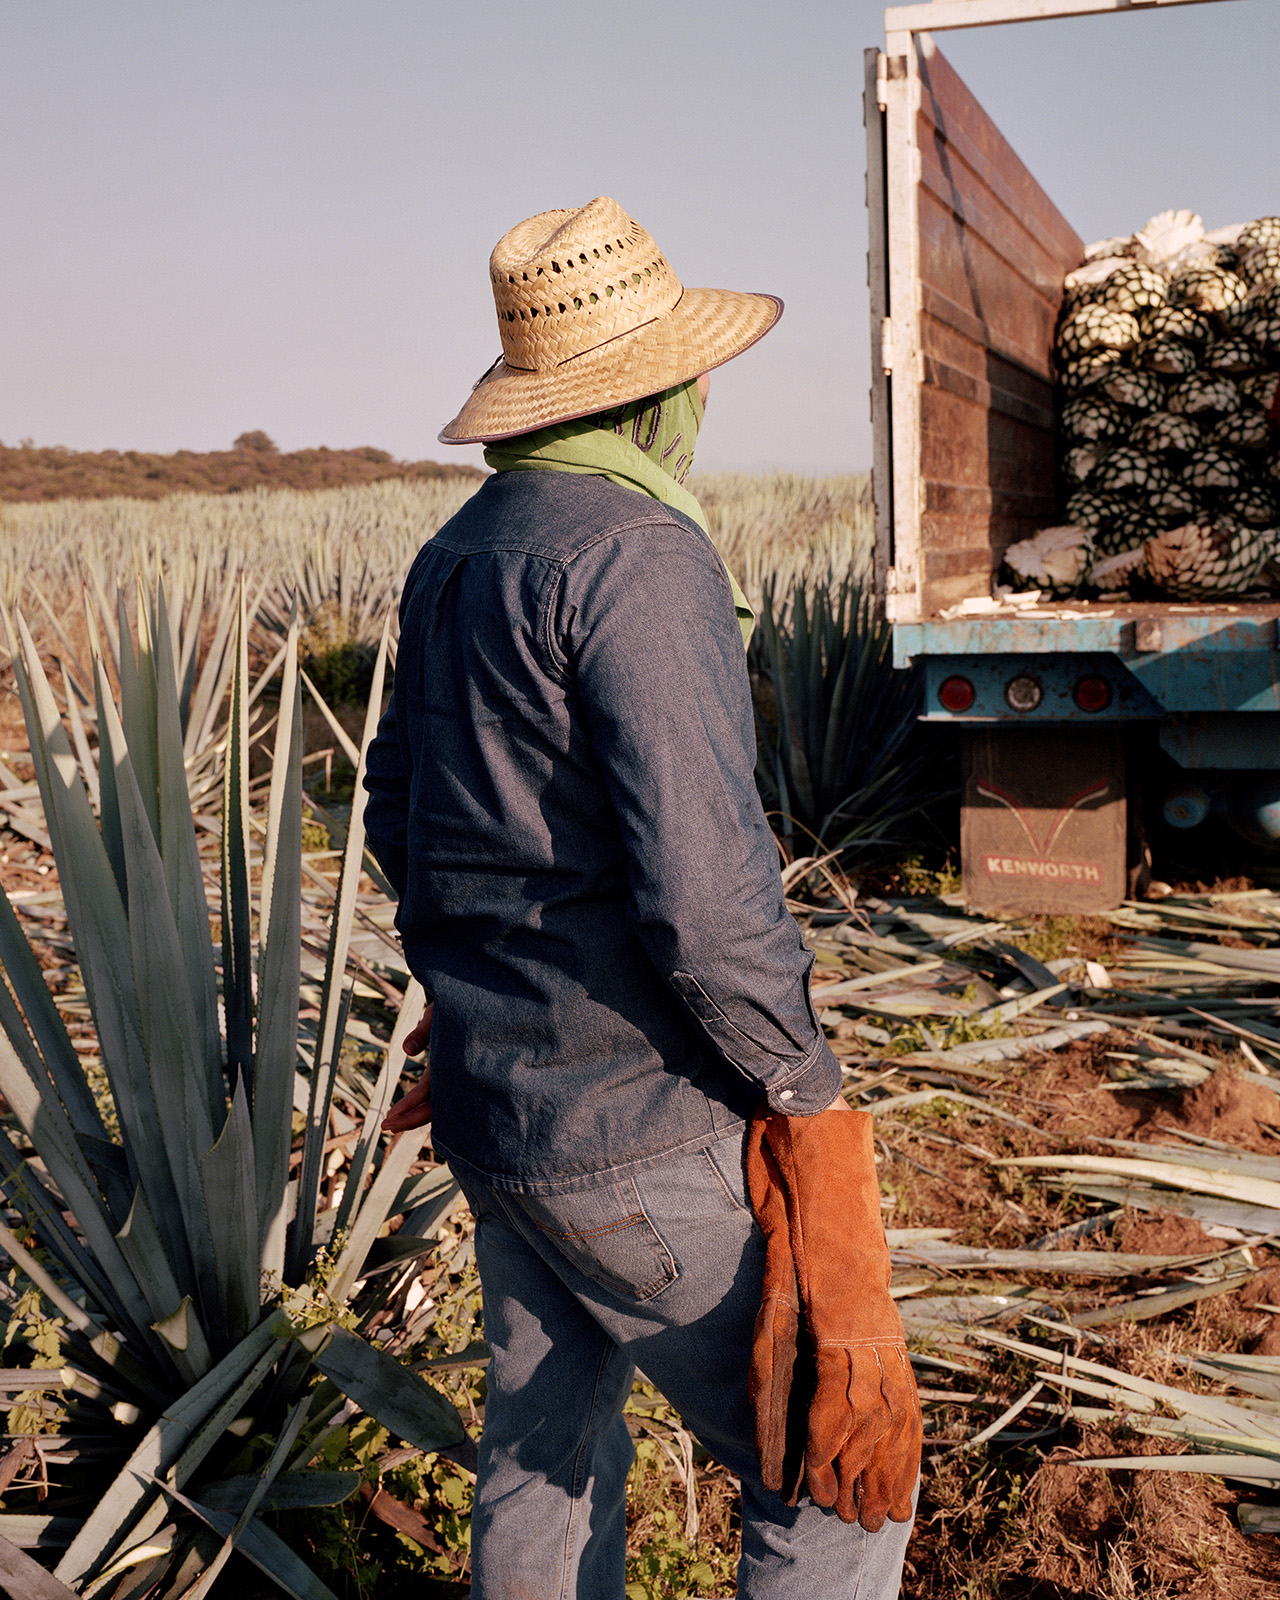 "Documented the tequila making process in Jalisco, Mexico and helped build brand recognition with an emerging boutique tequila by traveling through Mexico and capturing different aspects of ""taking it slow"""